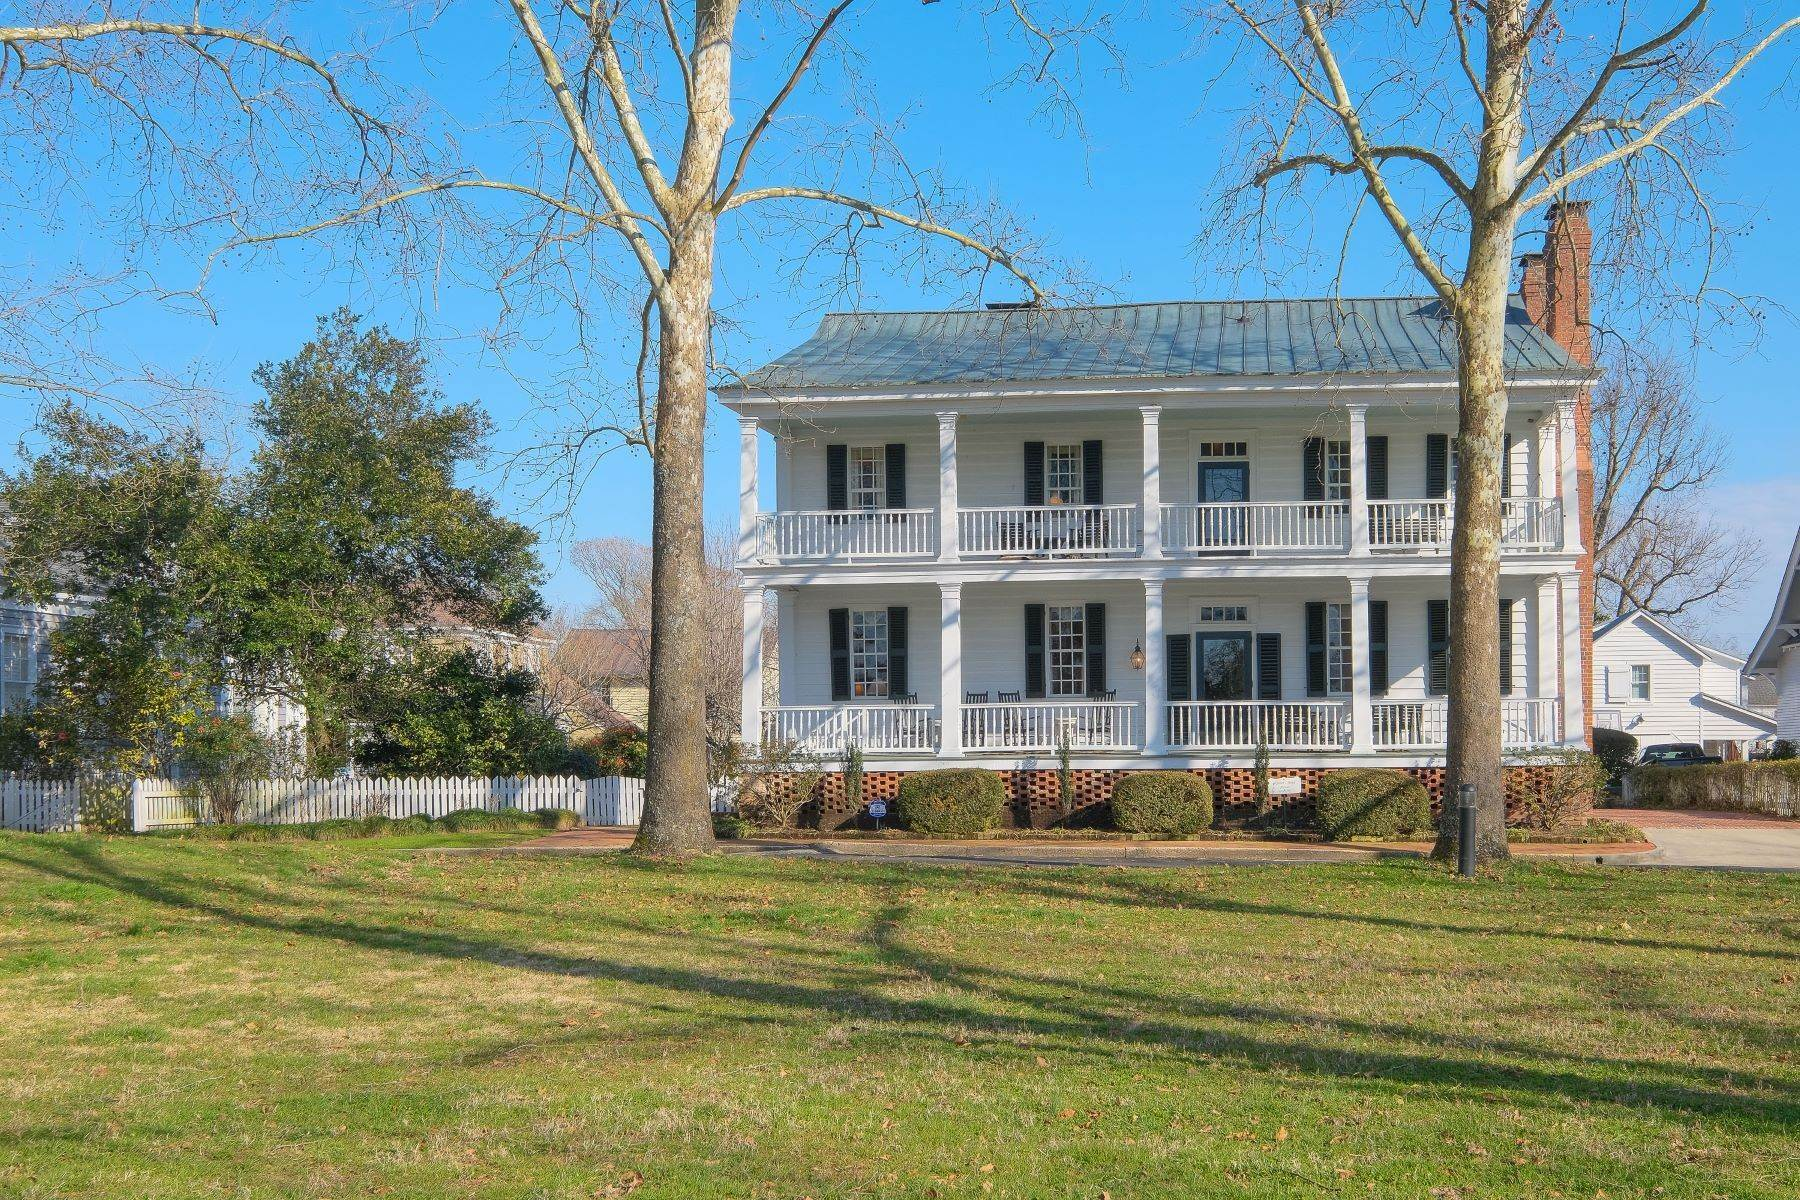 Property for Sale at HISTORIC GEM 405 Court St Edenton, North Carolina 27932 United States